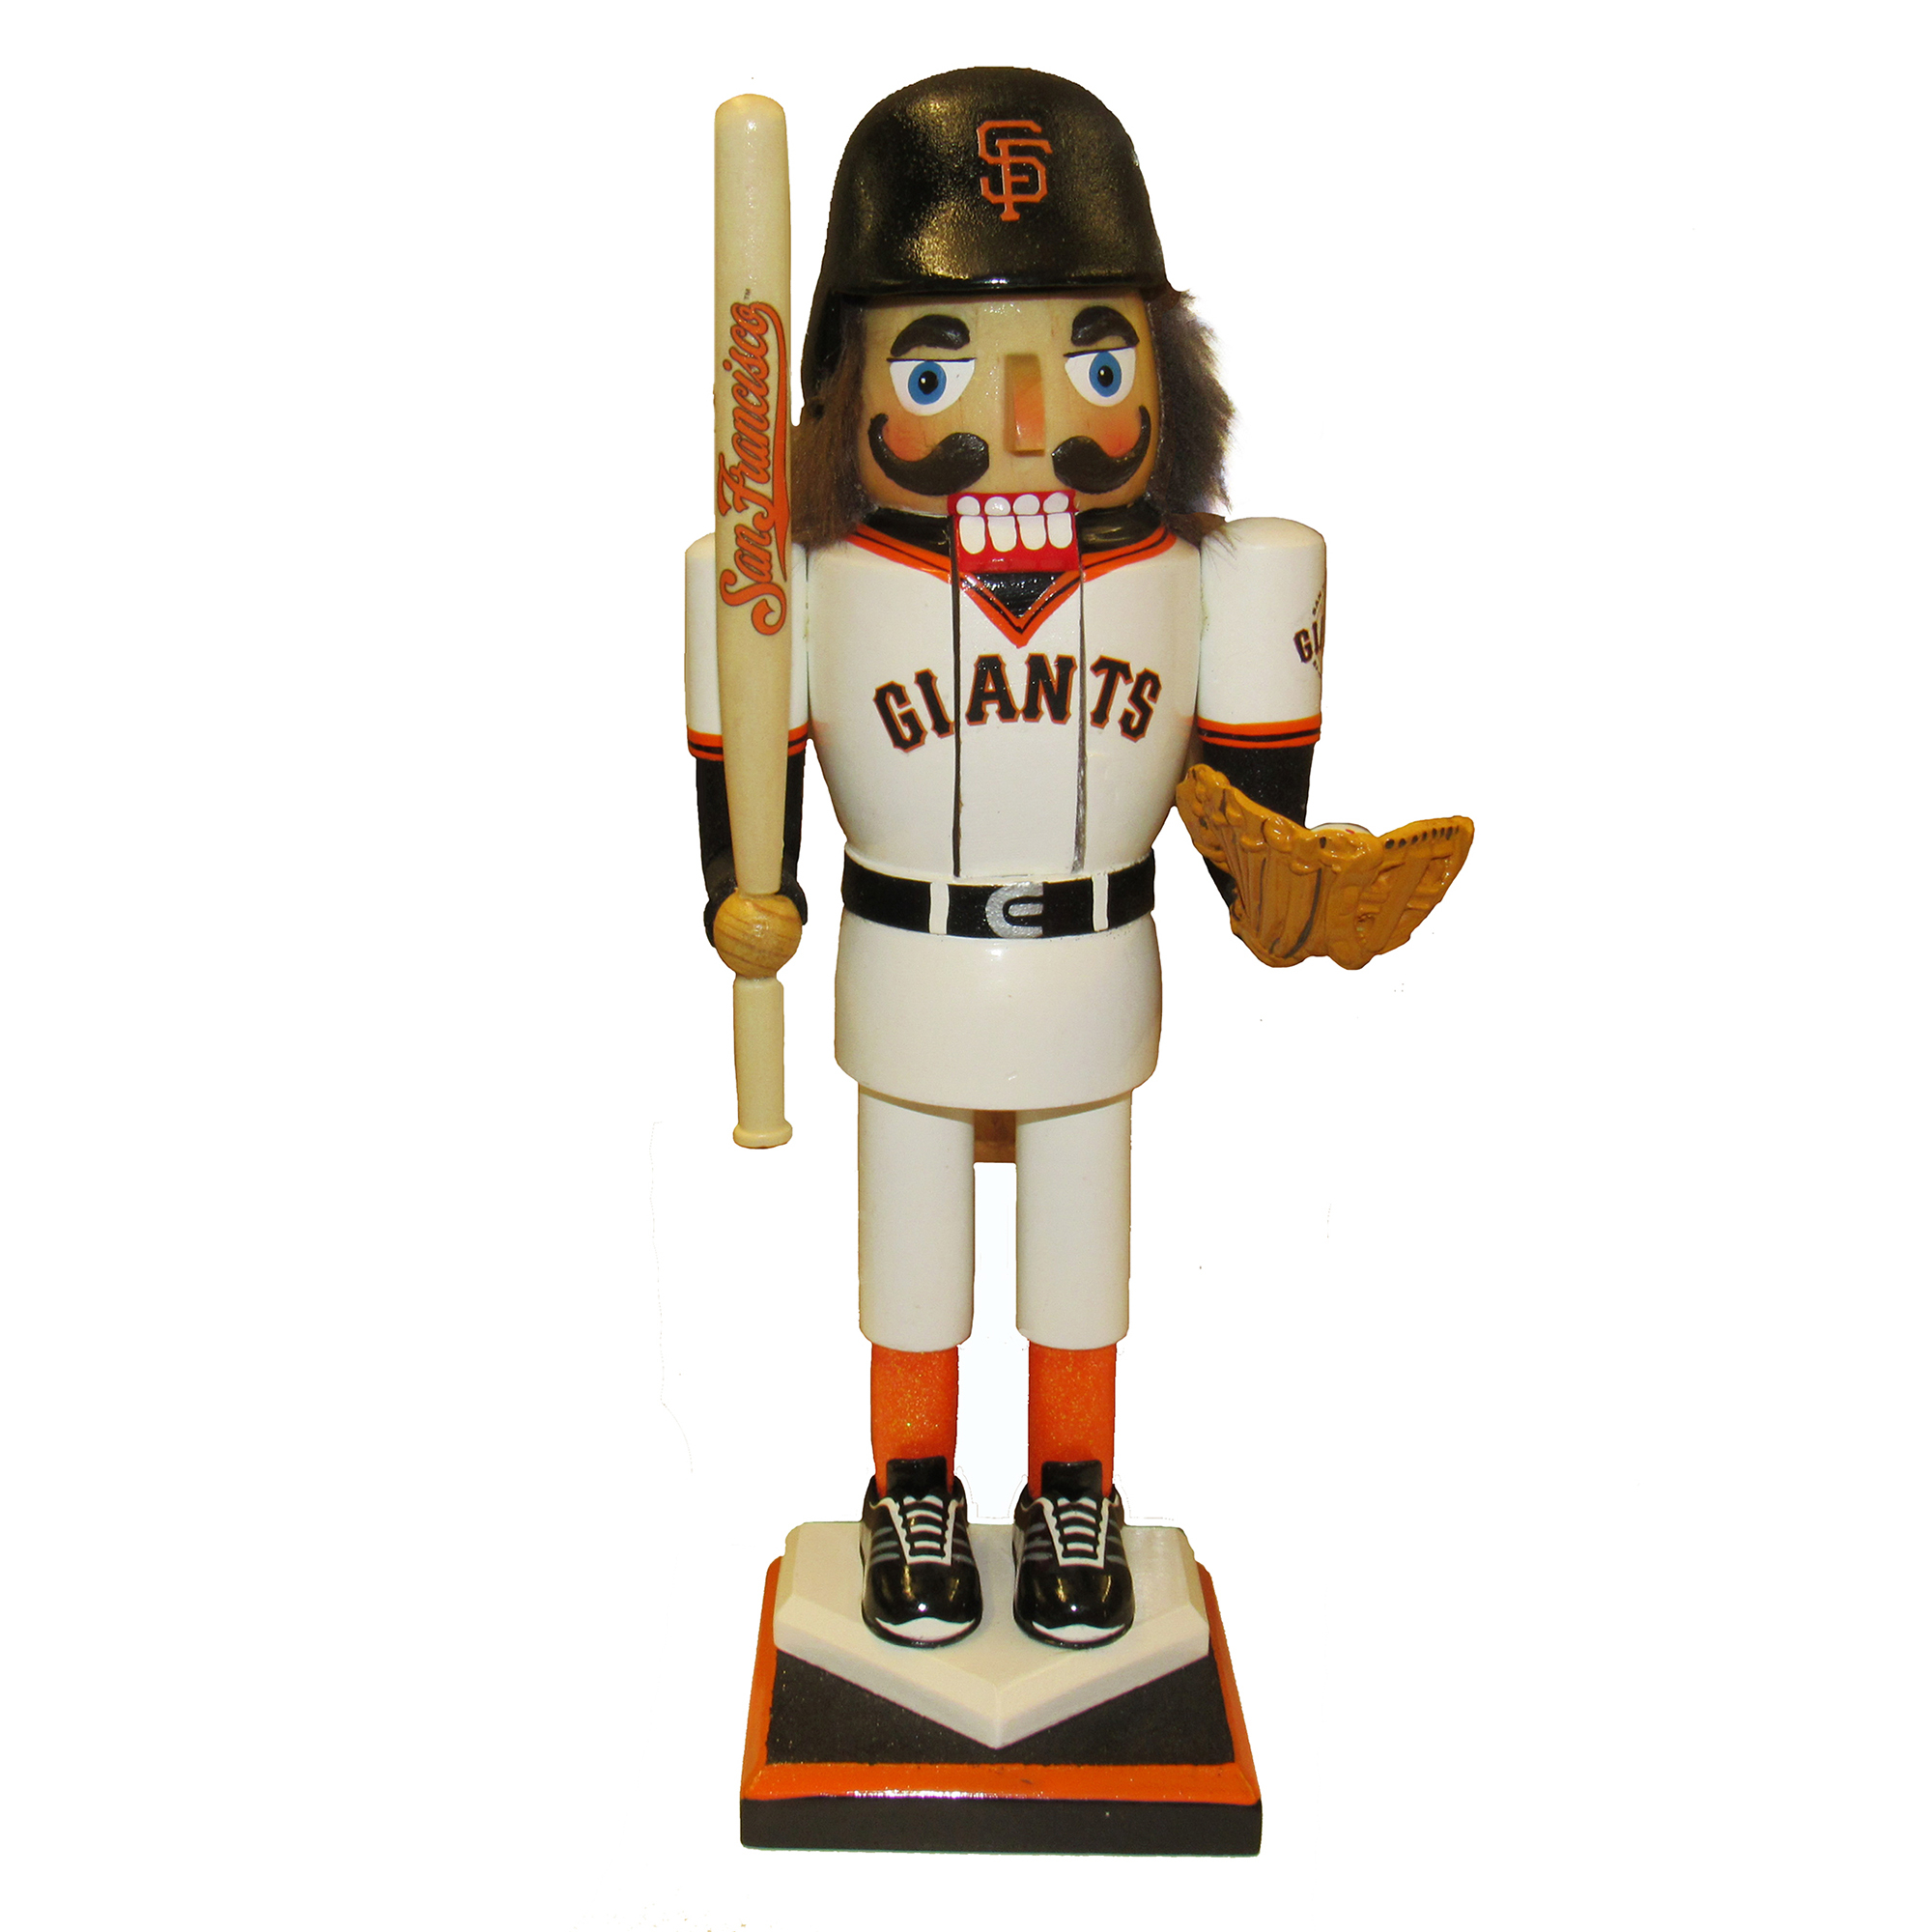 New SF Giants Nutcracker